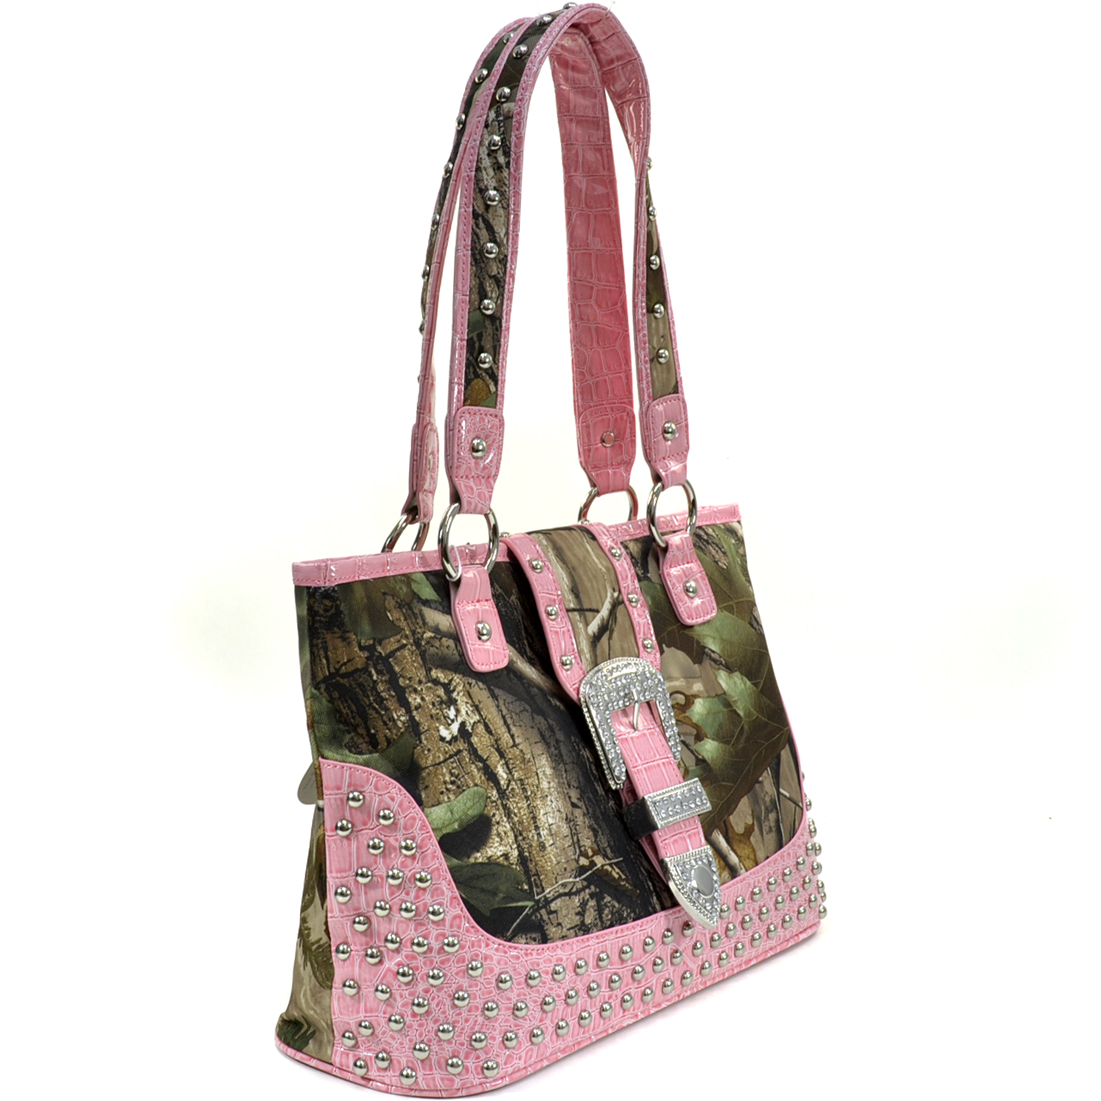 Realtree® Camo Studded Tote Bag with Croco Trim and Buckle Accent